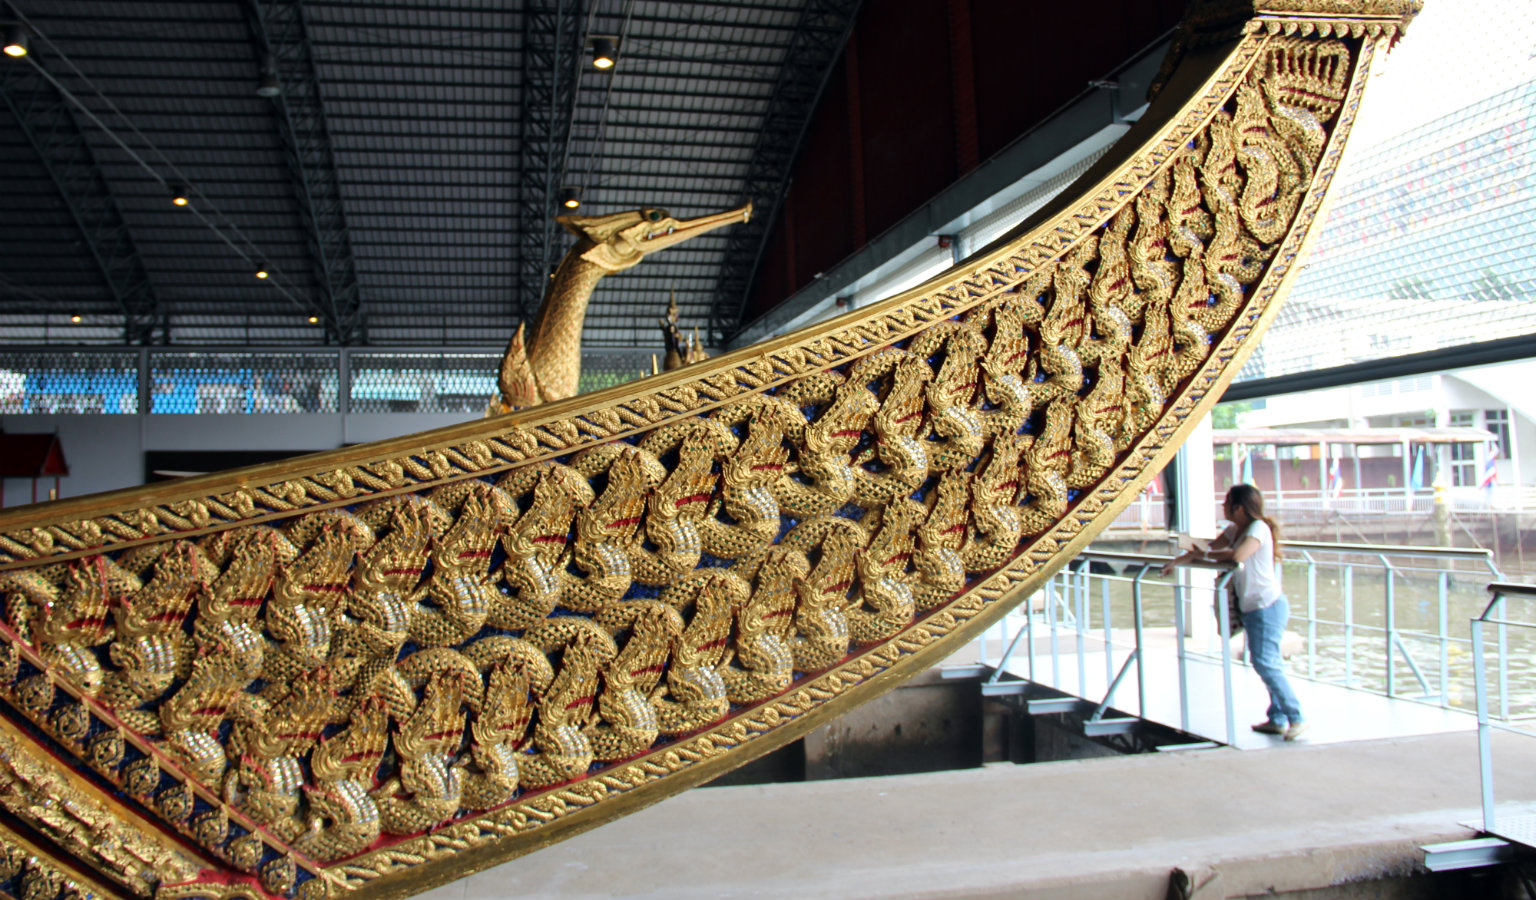 The Royal Barge of Anekchat Puchong in the National Museum of Royal Barges in Bangkok